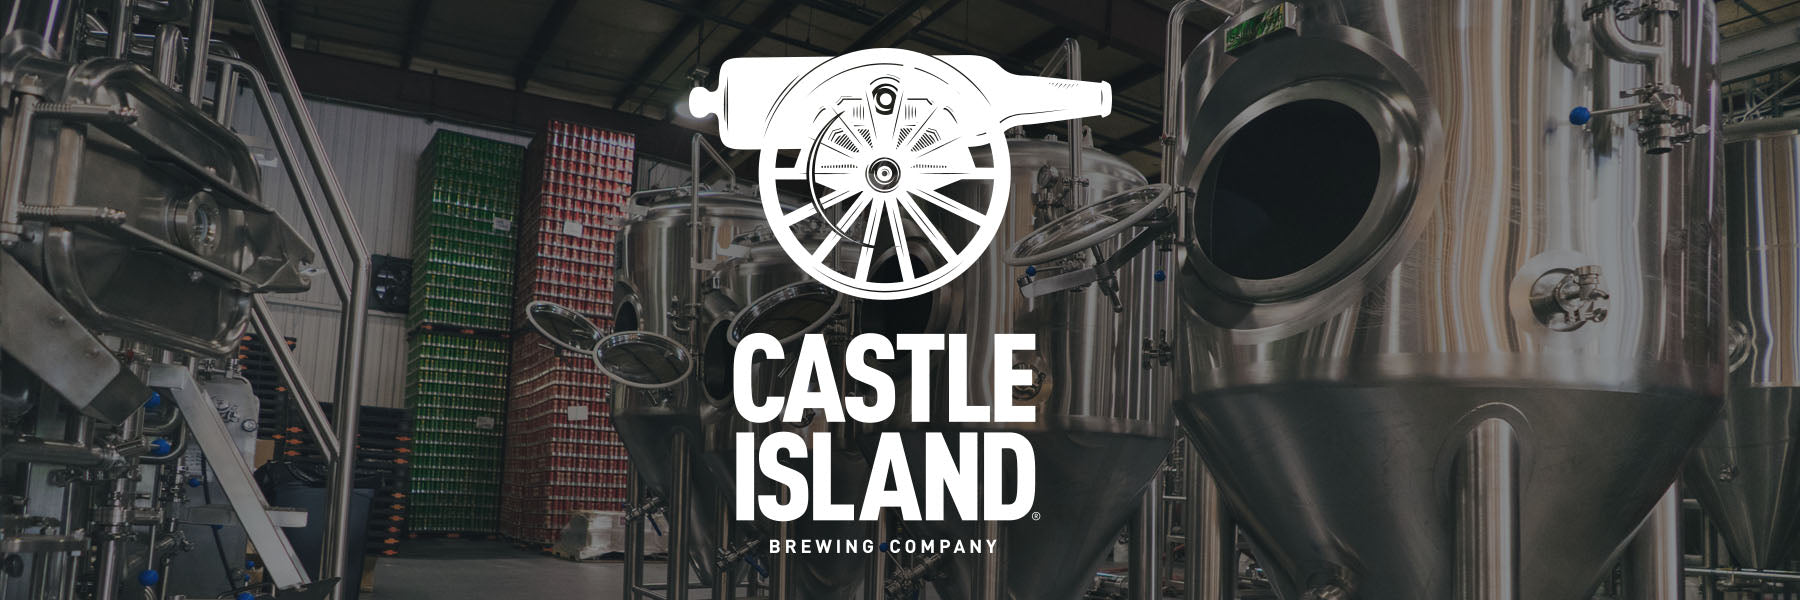 Castle Island Brewing Co 5bbl Pilot Brewhouse Ss Brewtech